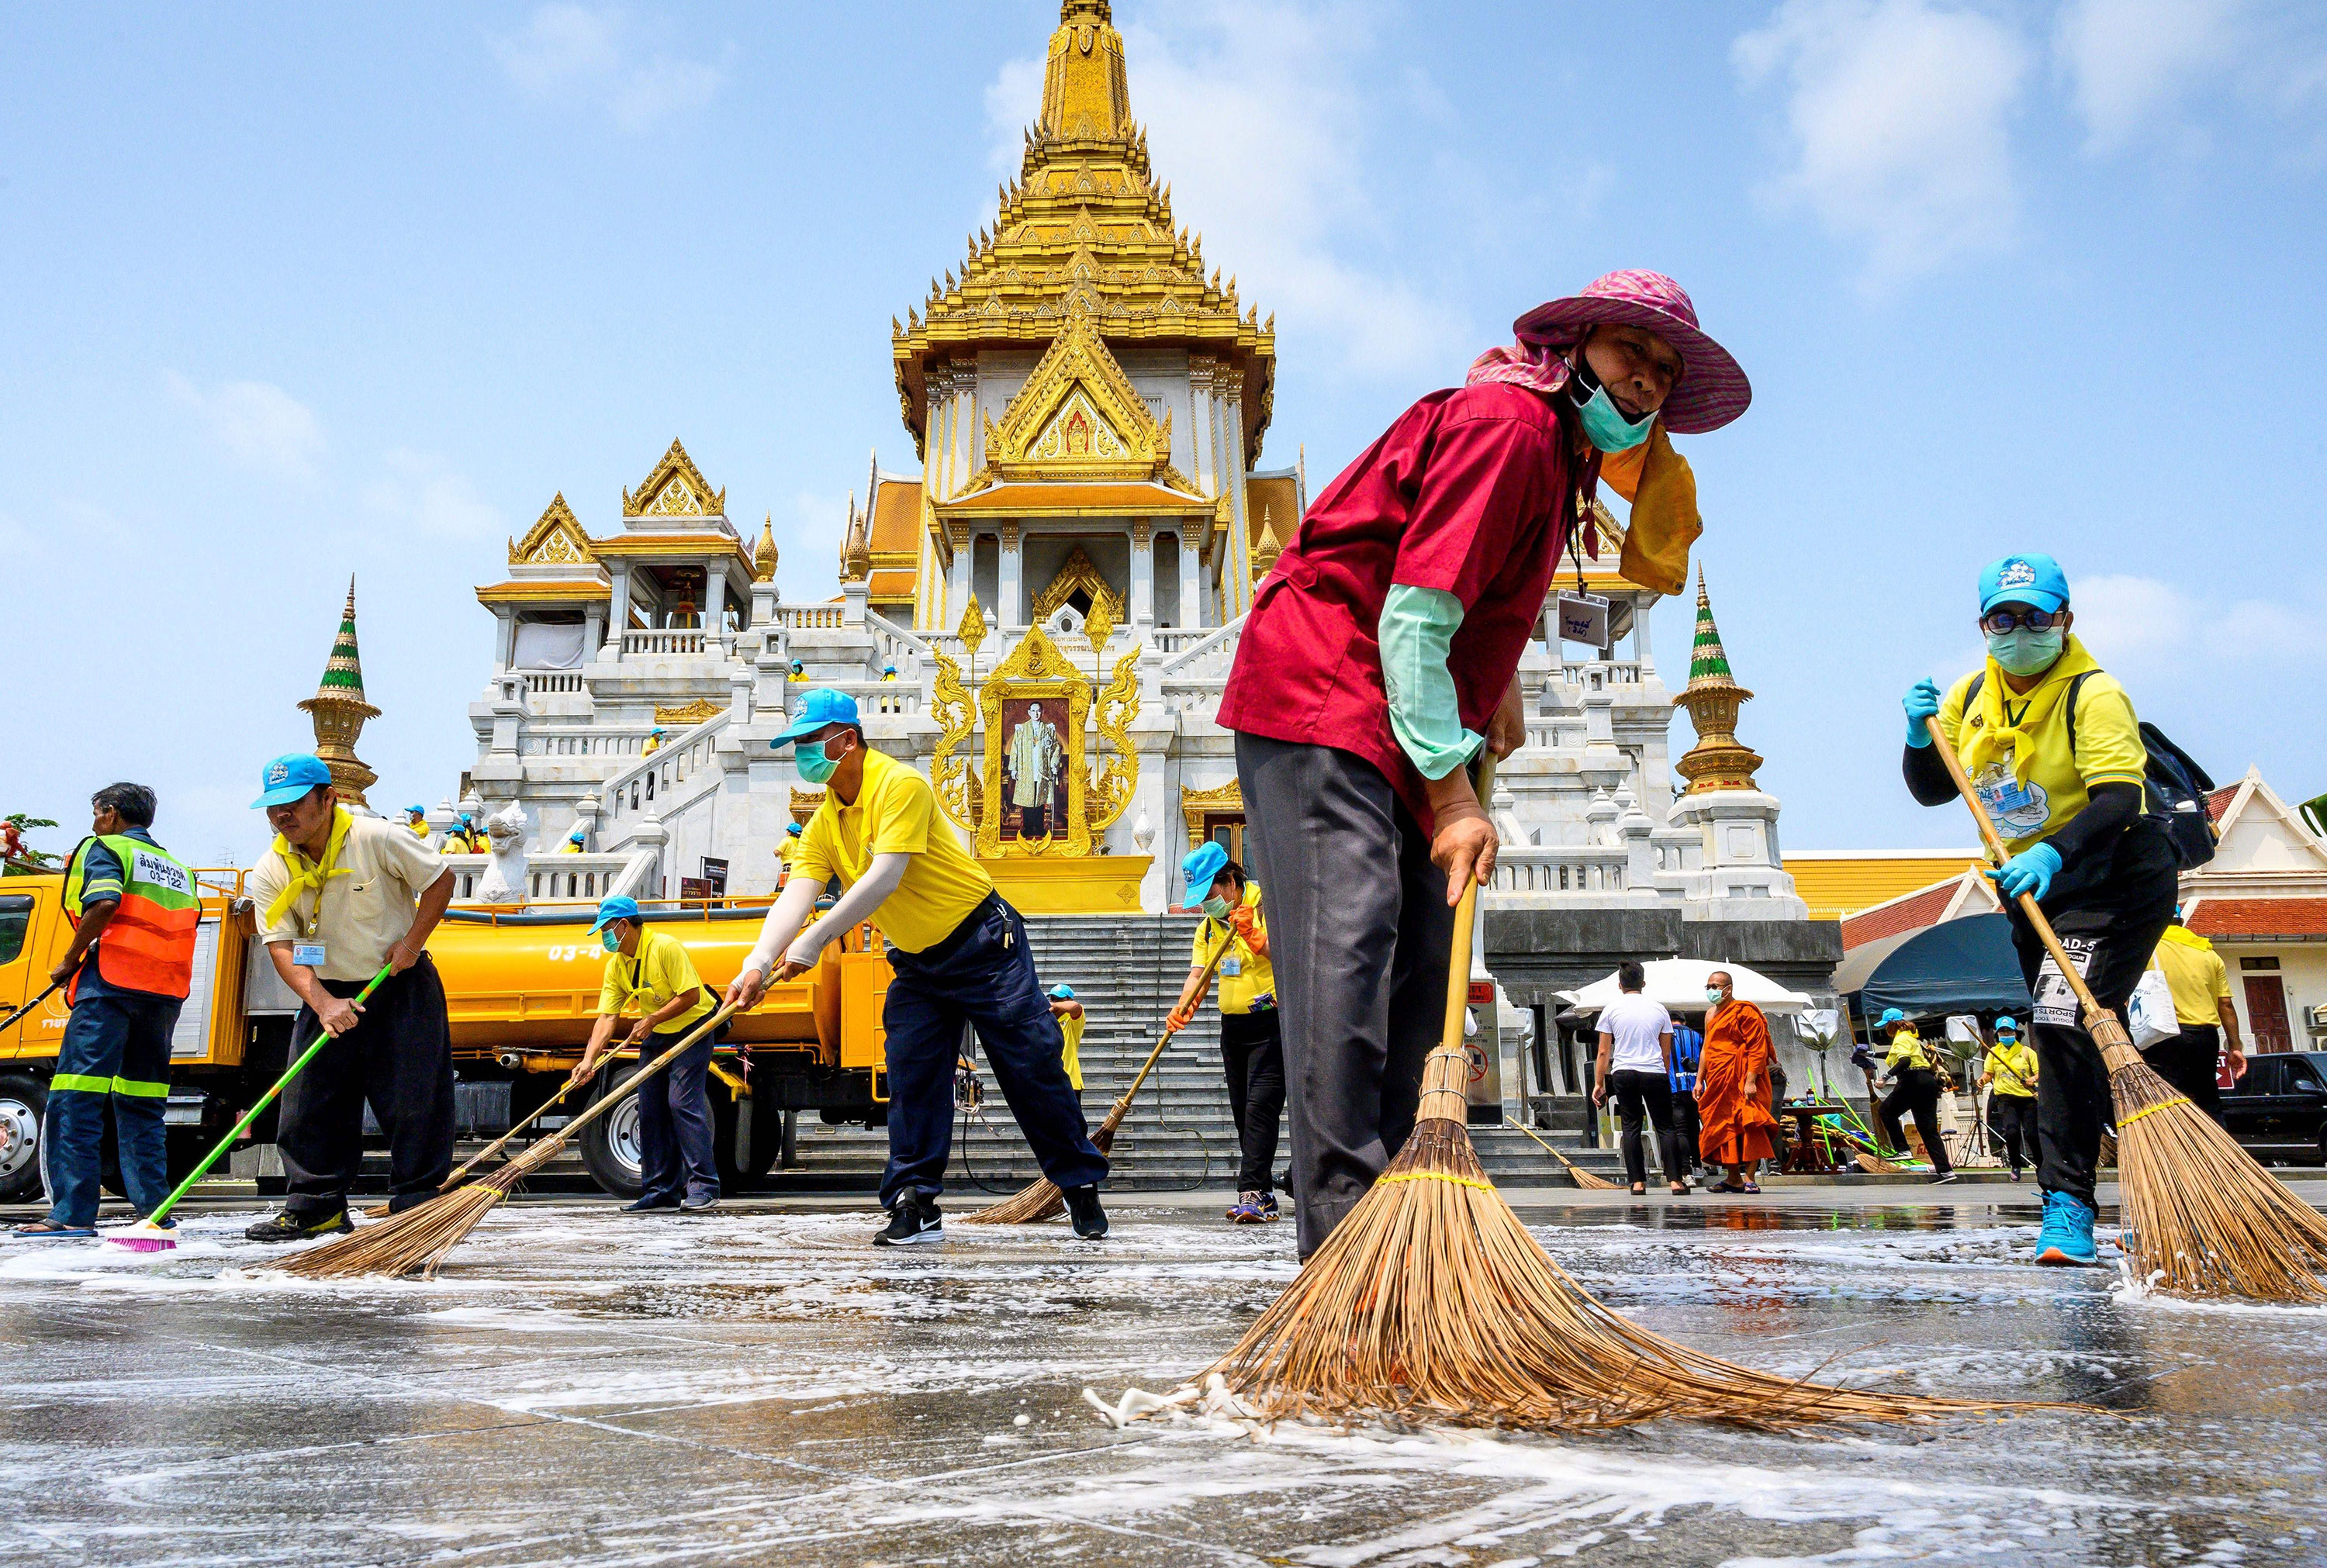 Volunteers use disinfectant Wat Traimit temple in Bangkok, Thailand on March 18.